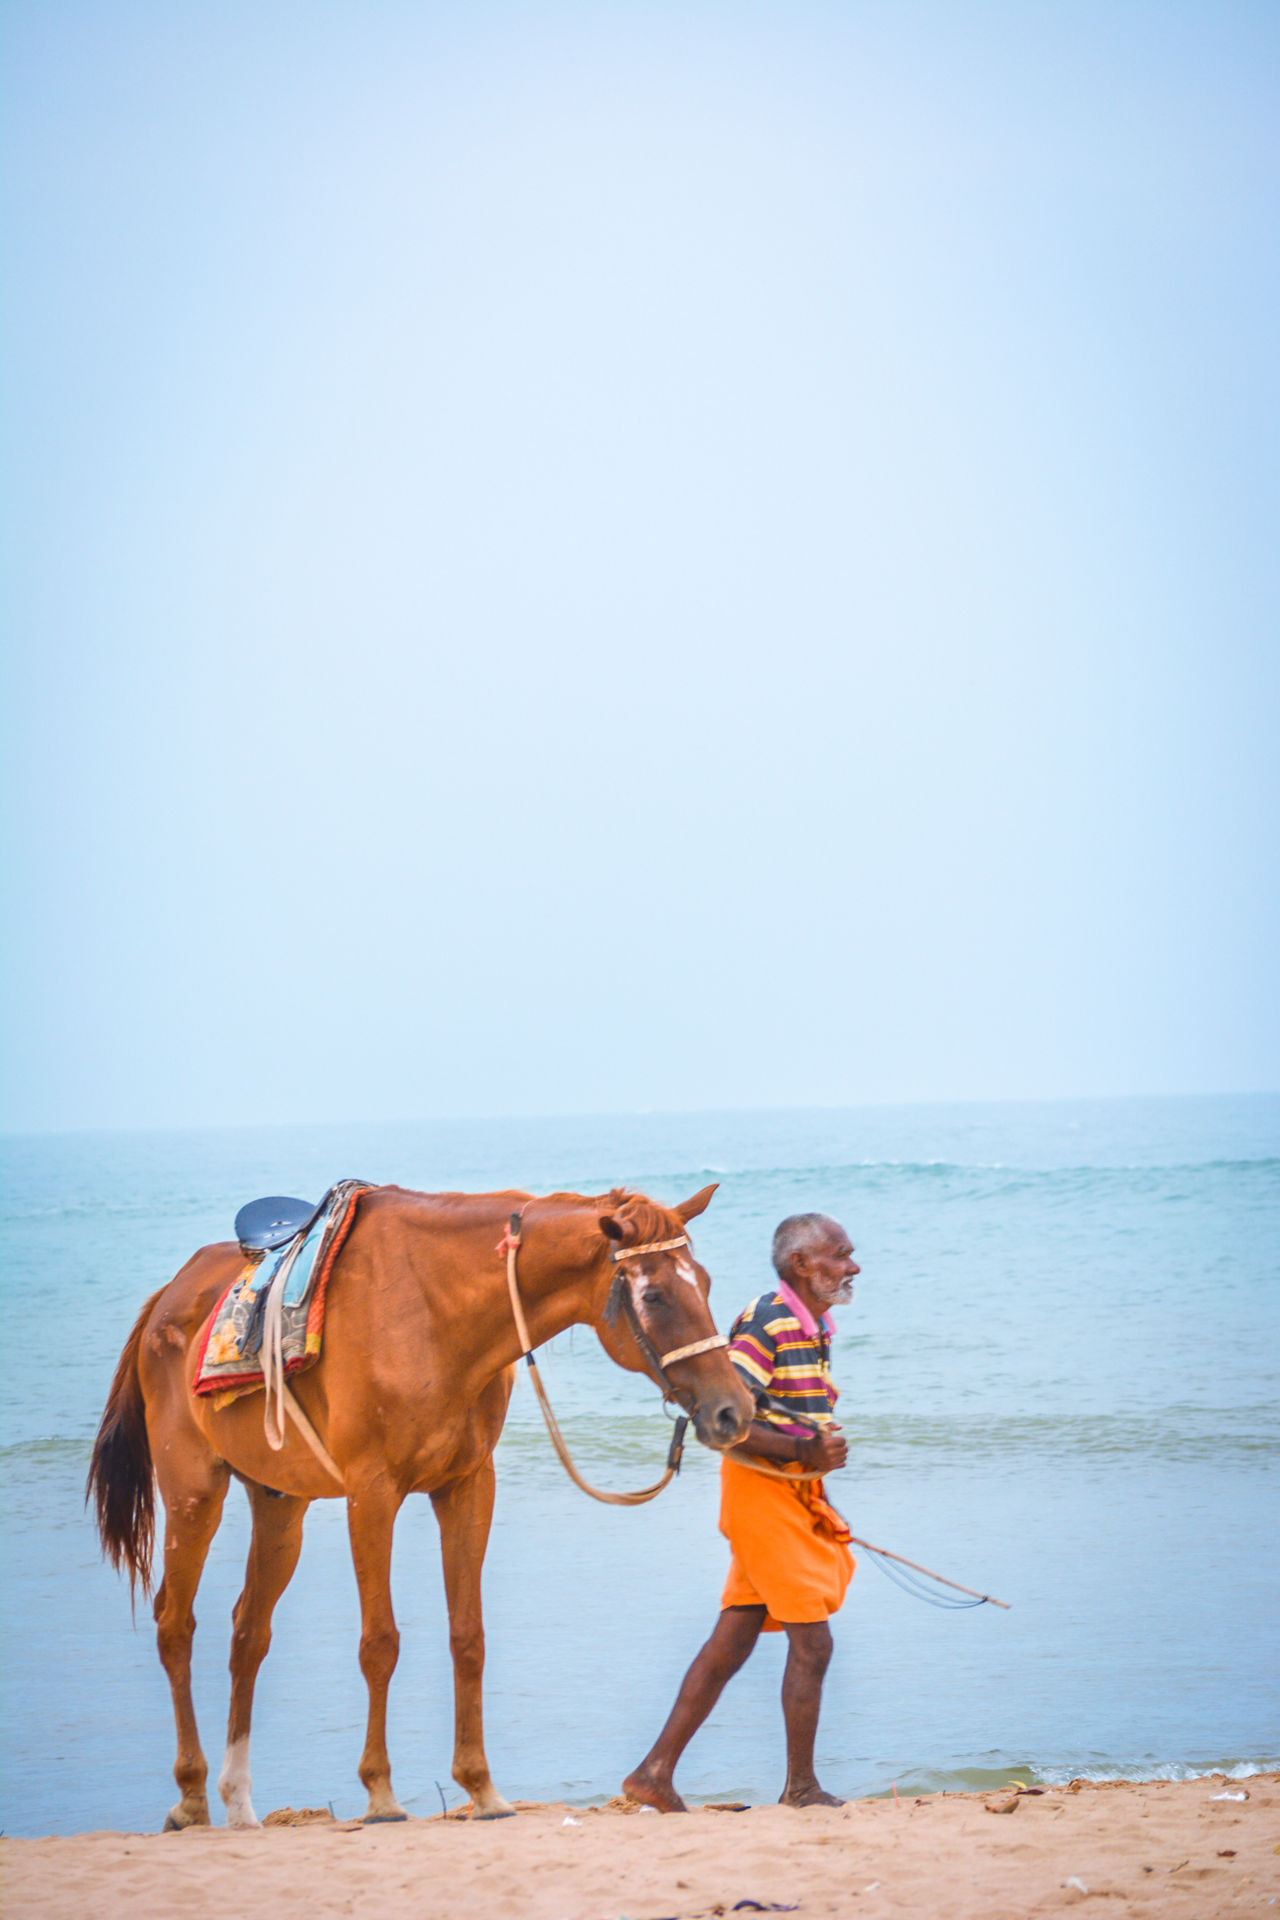 Beautiful stock photos of tiere, domestic animals, horse, sea, copy space